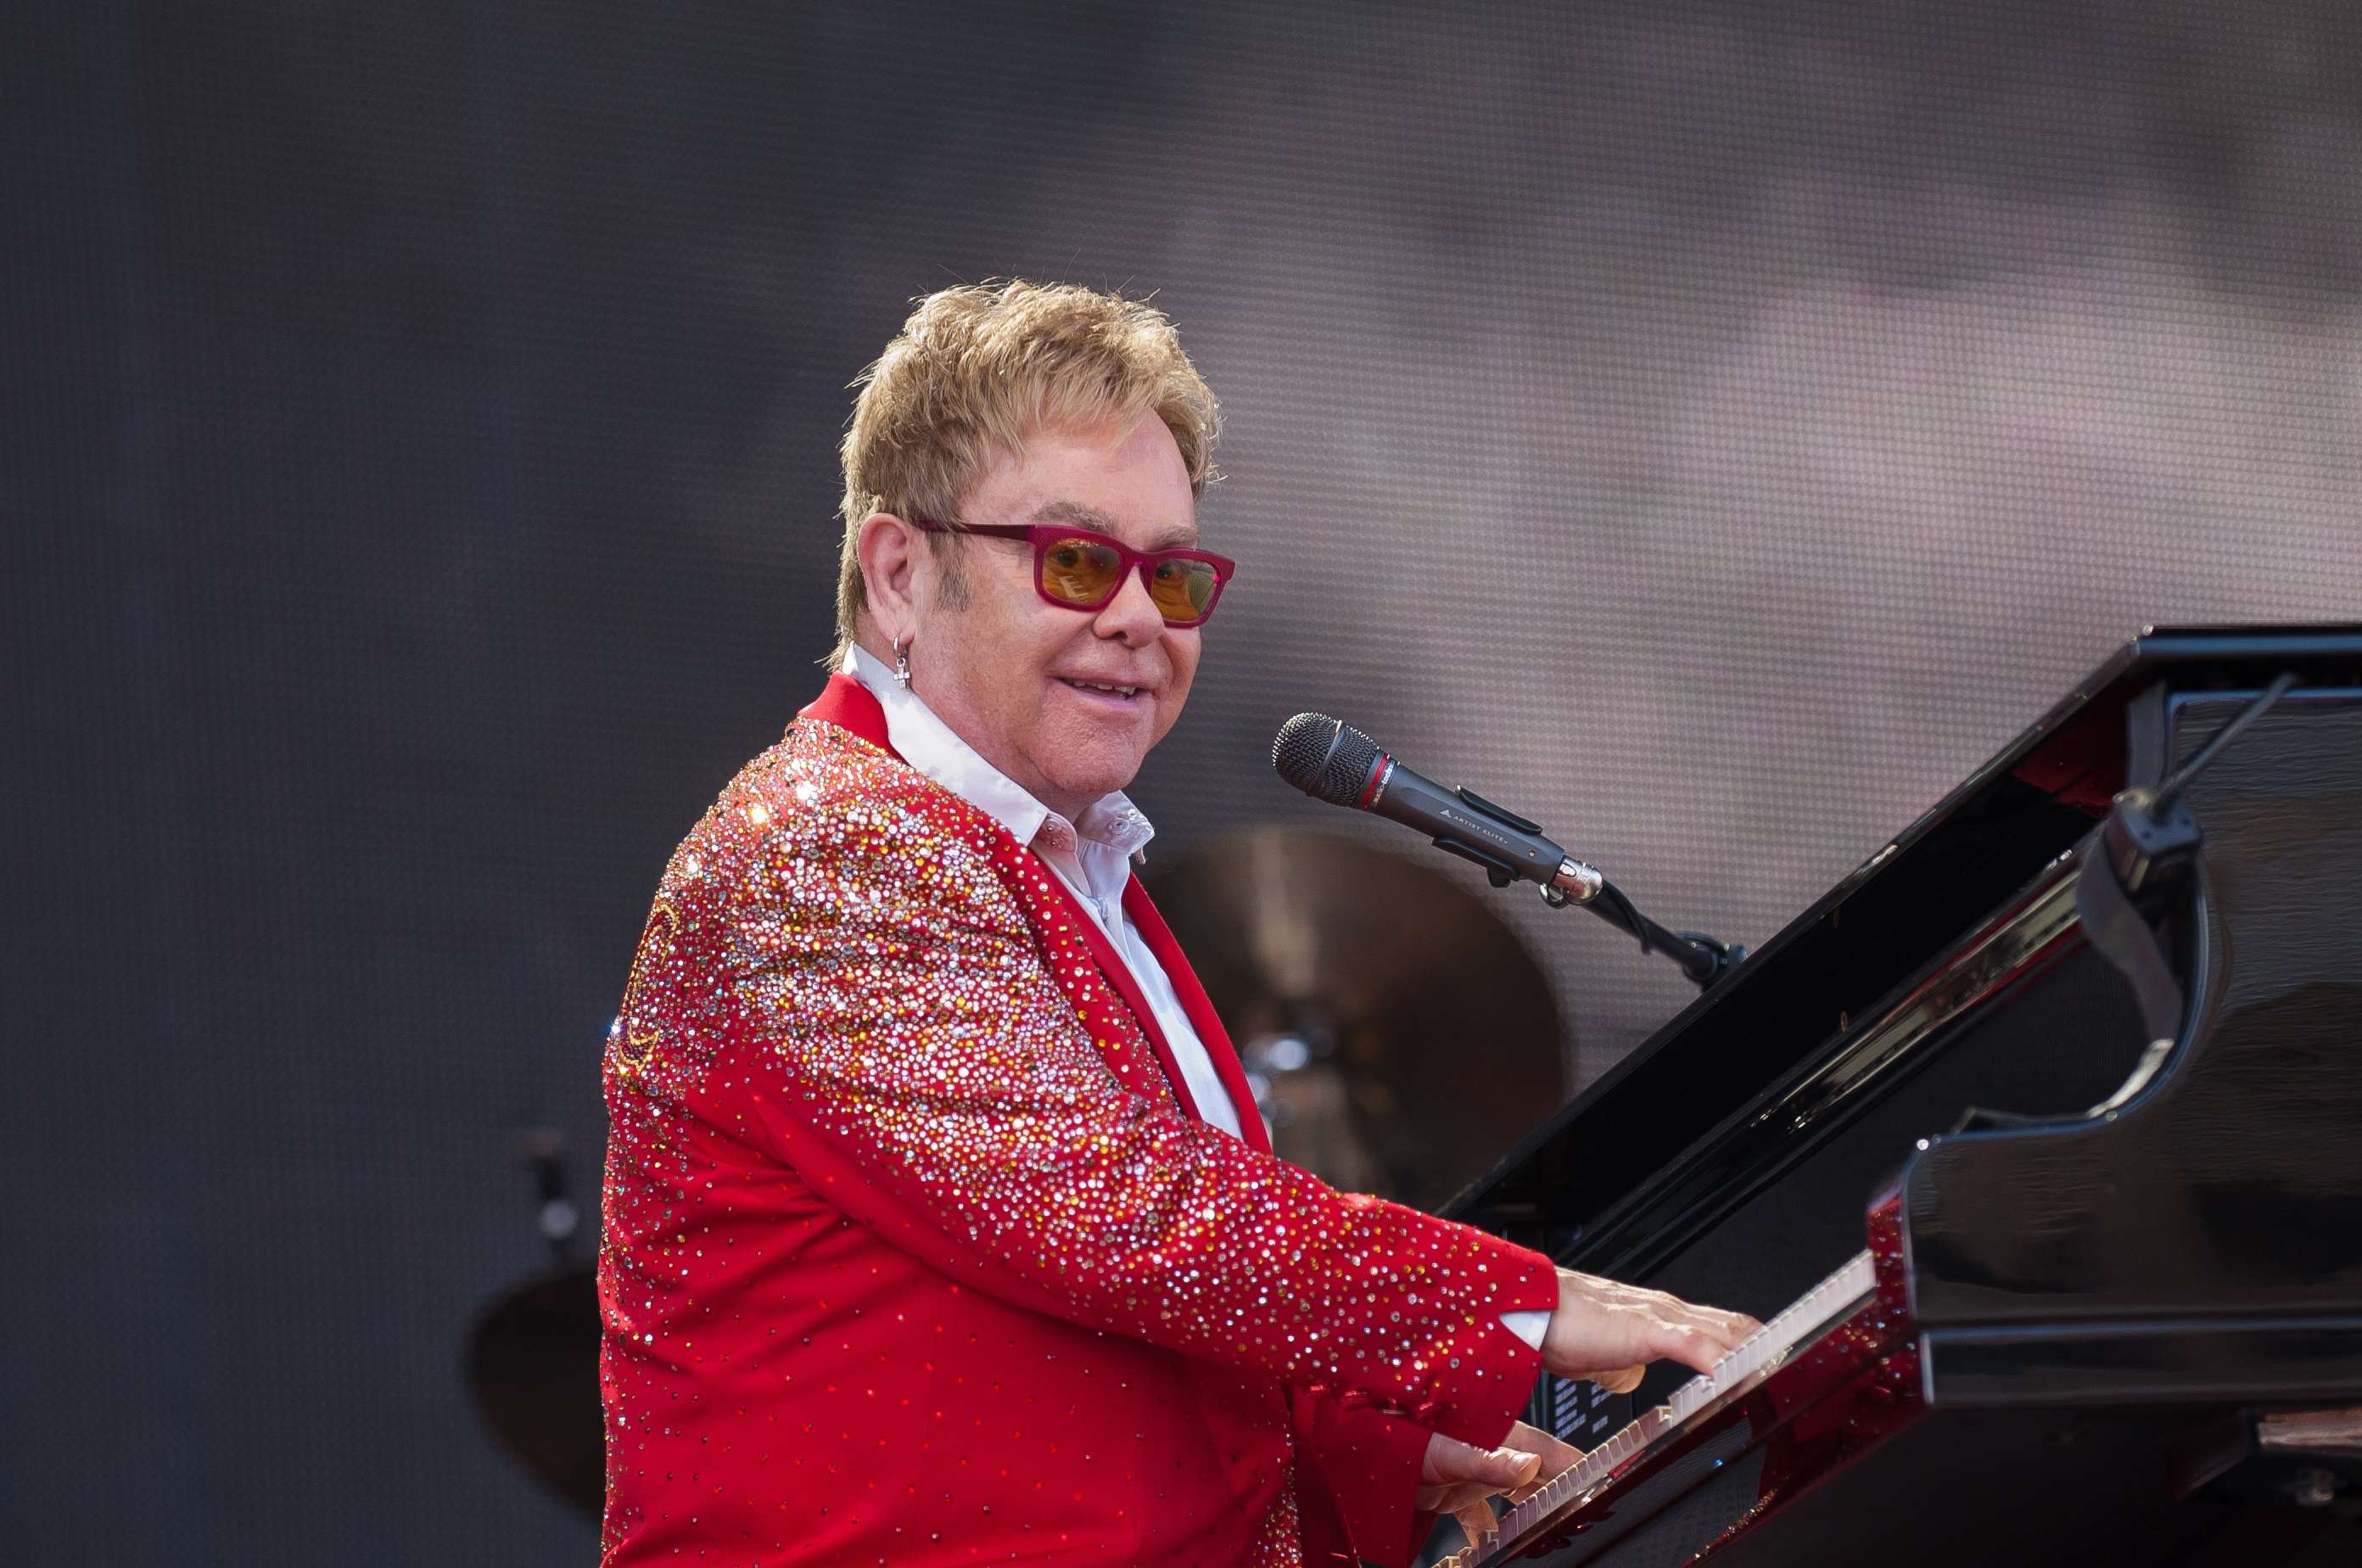 Elton John Performing Wallpaper 60603 2784x1848px 2784x1848